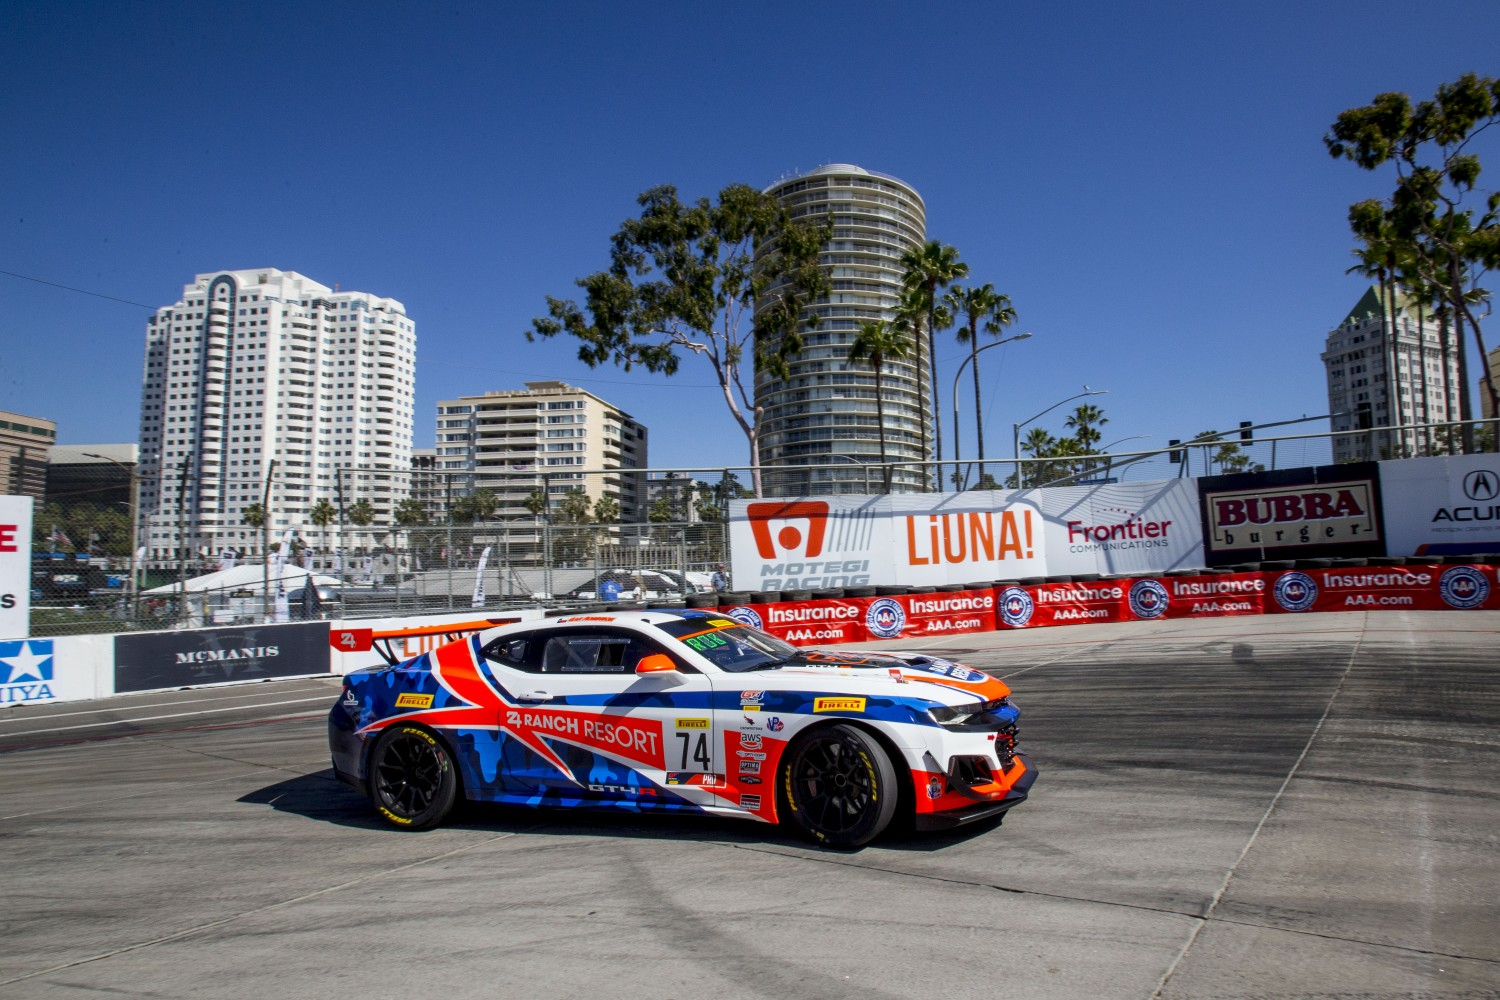 #74 Chevrolet Camaro GT4 of Gar Robinson, Streets of Long Beach, Long Beach, CA.  | Brian Cleary/SRO